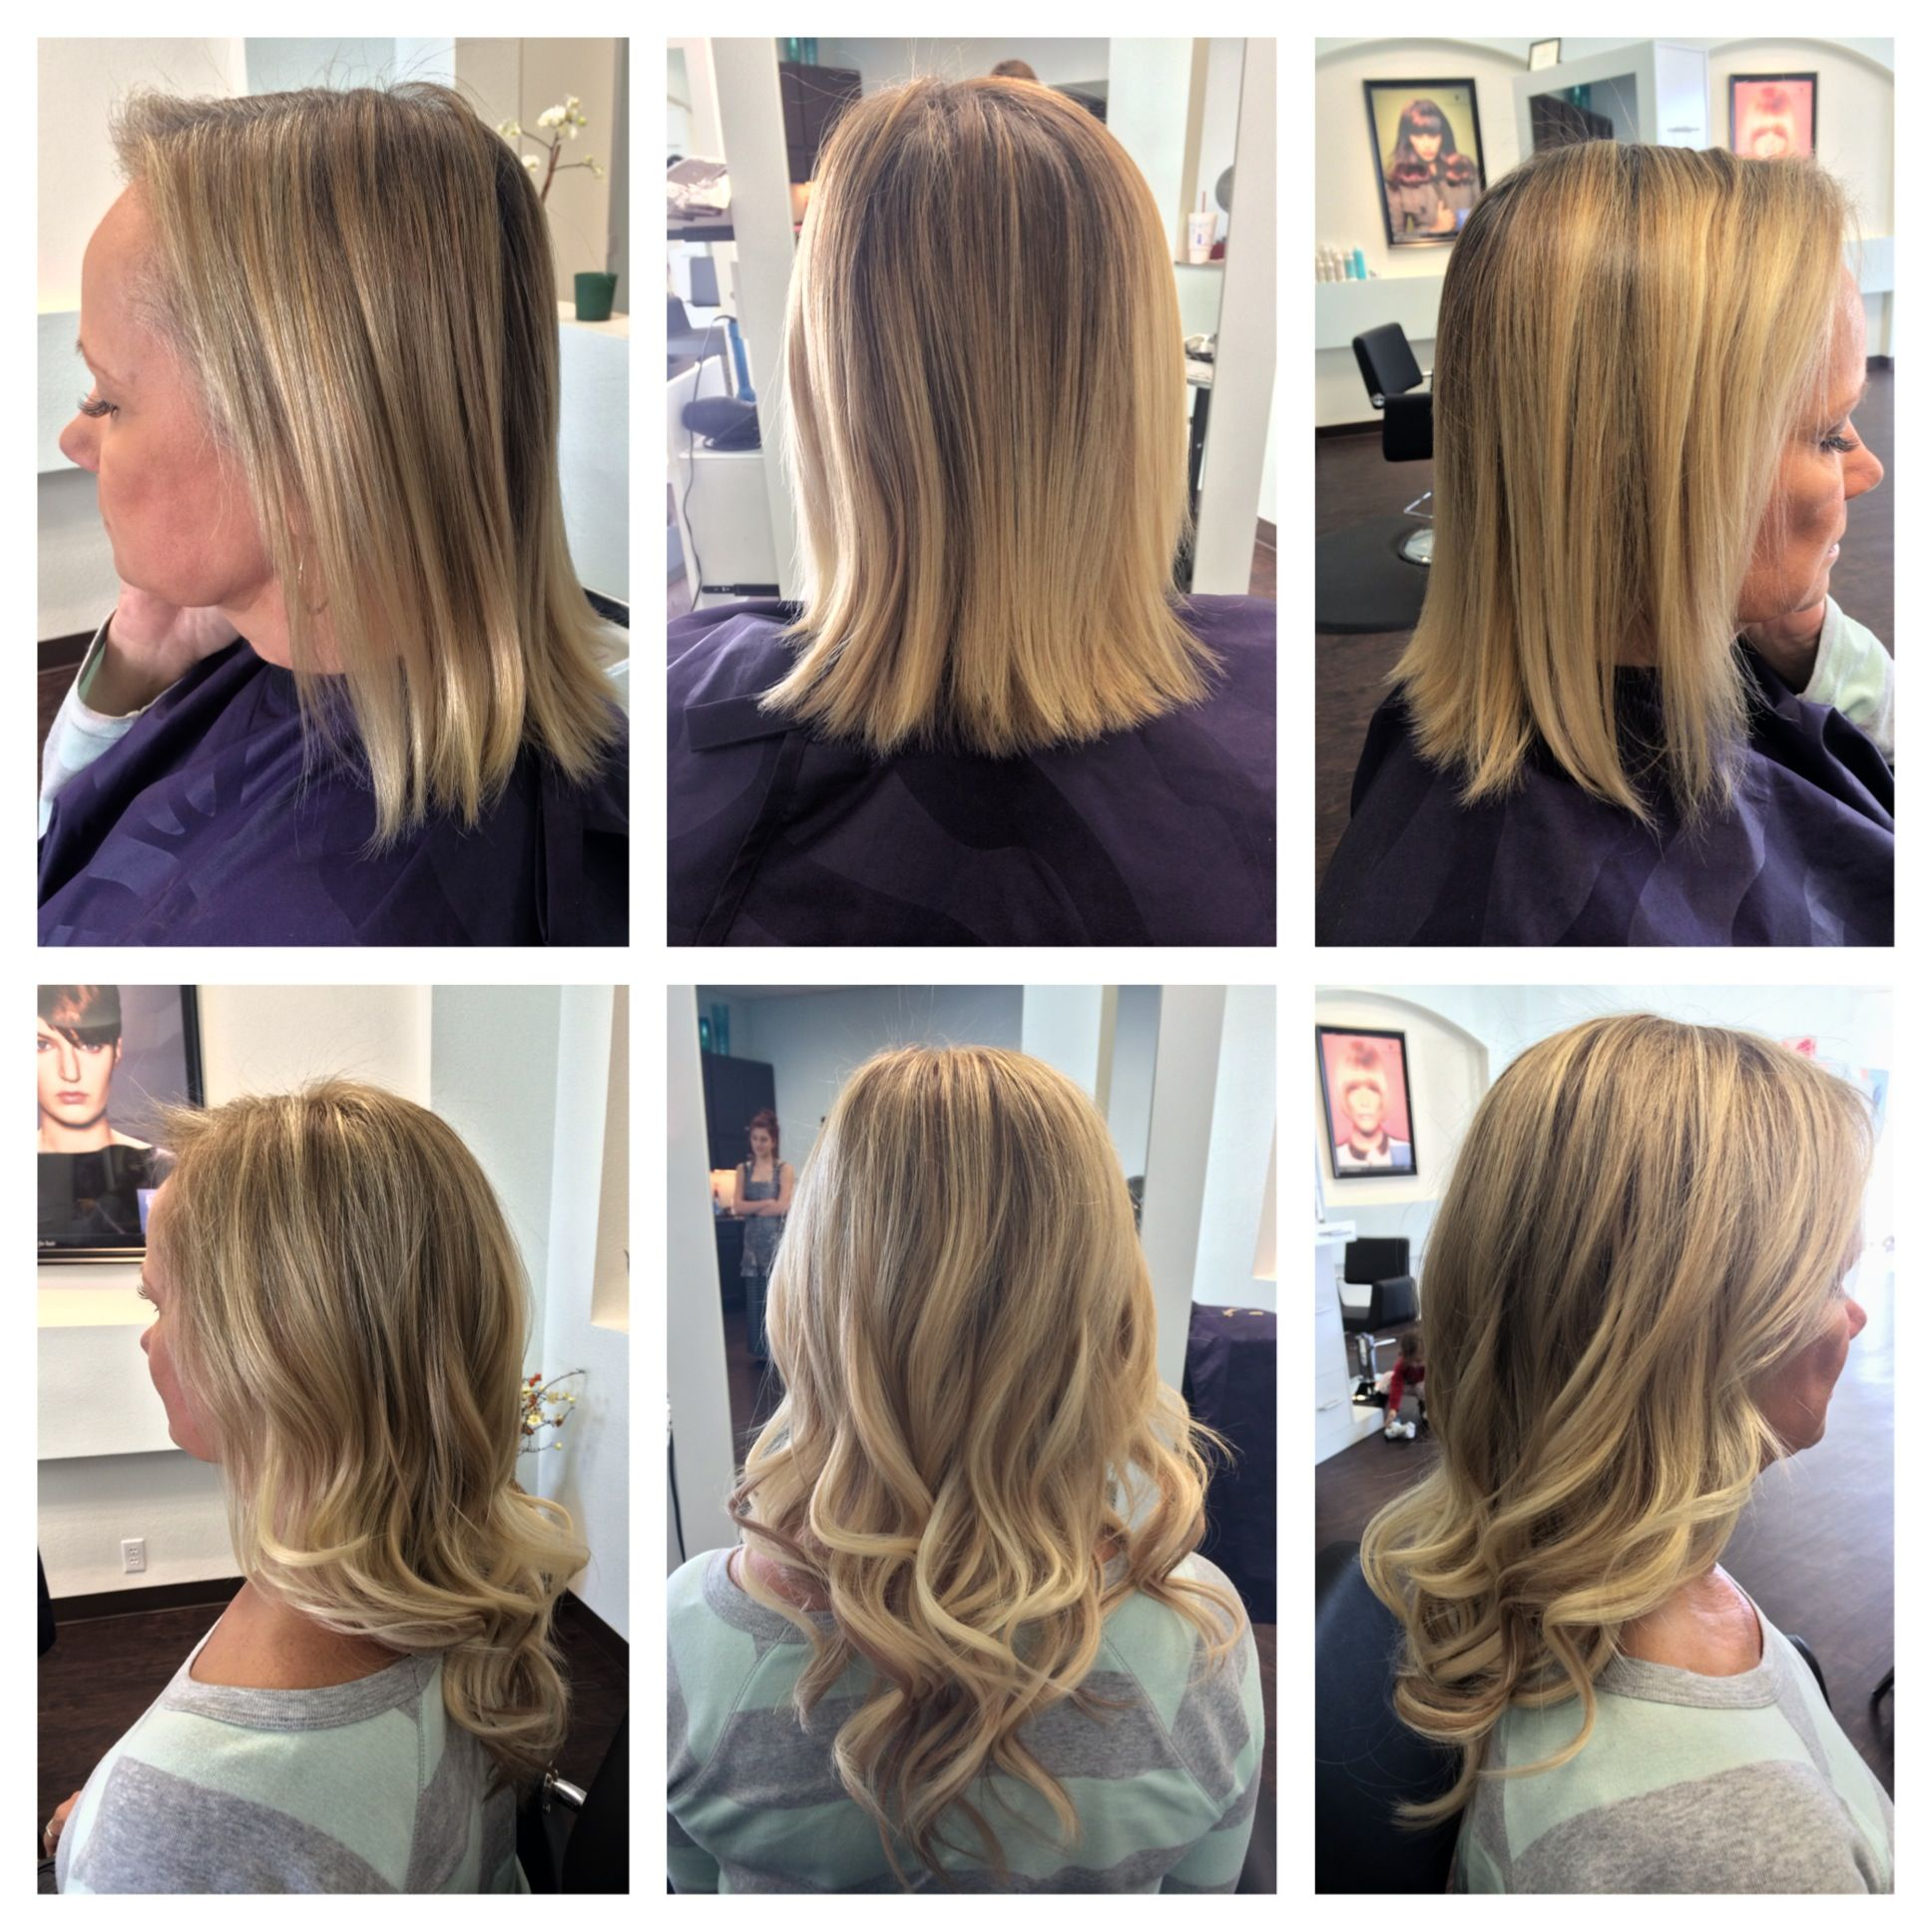 Hair Extensions Before And After 16 I Link Extensions Stylist In